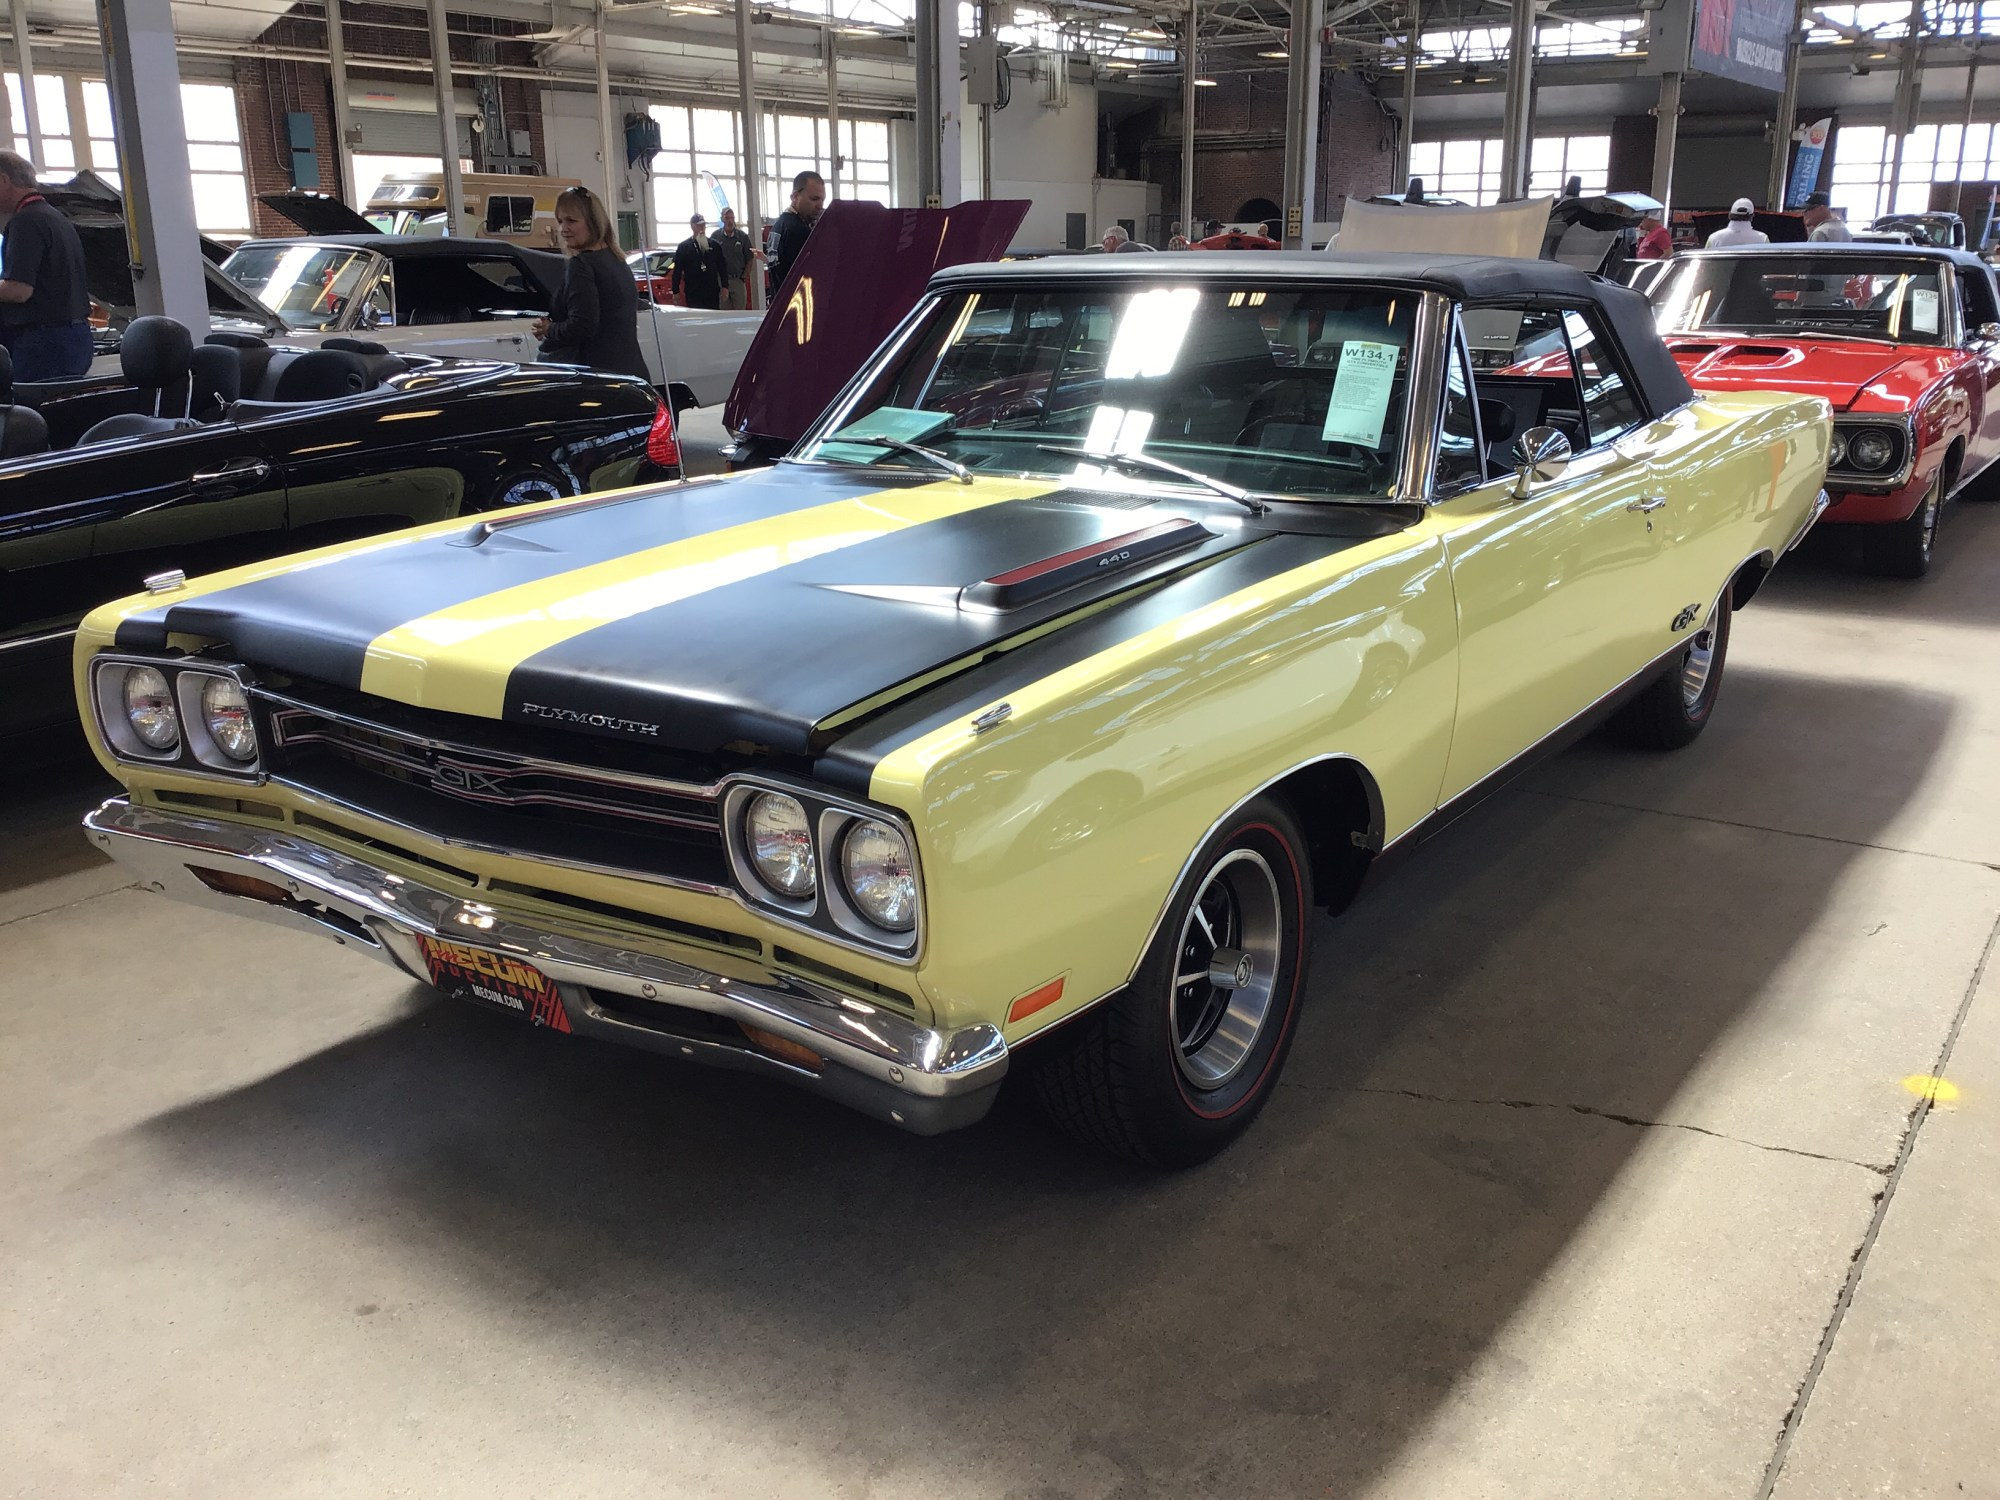 hight resolution of 1969 plymouth gtx convertible 8 cyl 440cid 375hp 4bbl hi perf